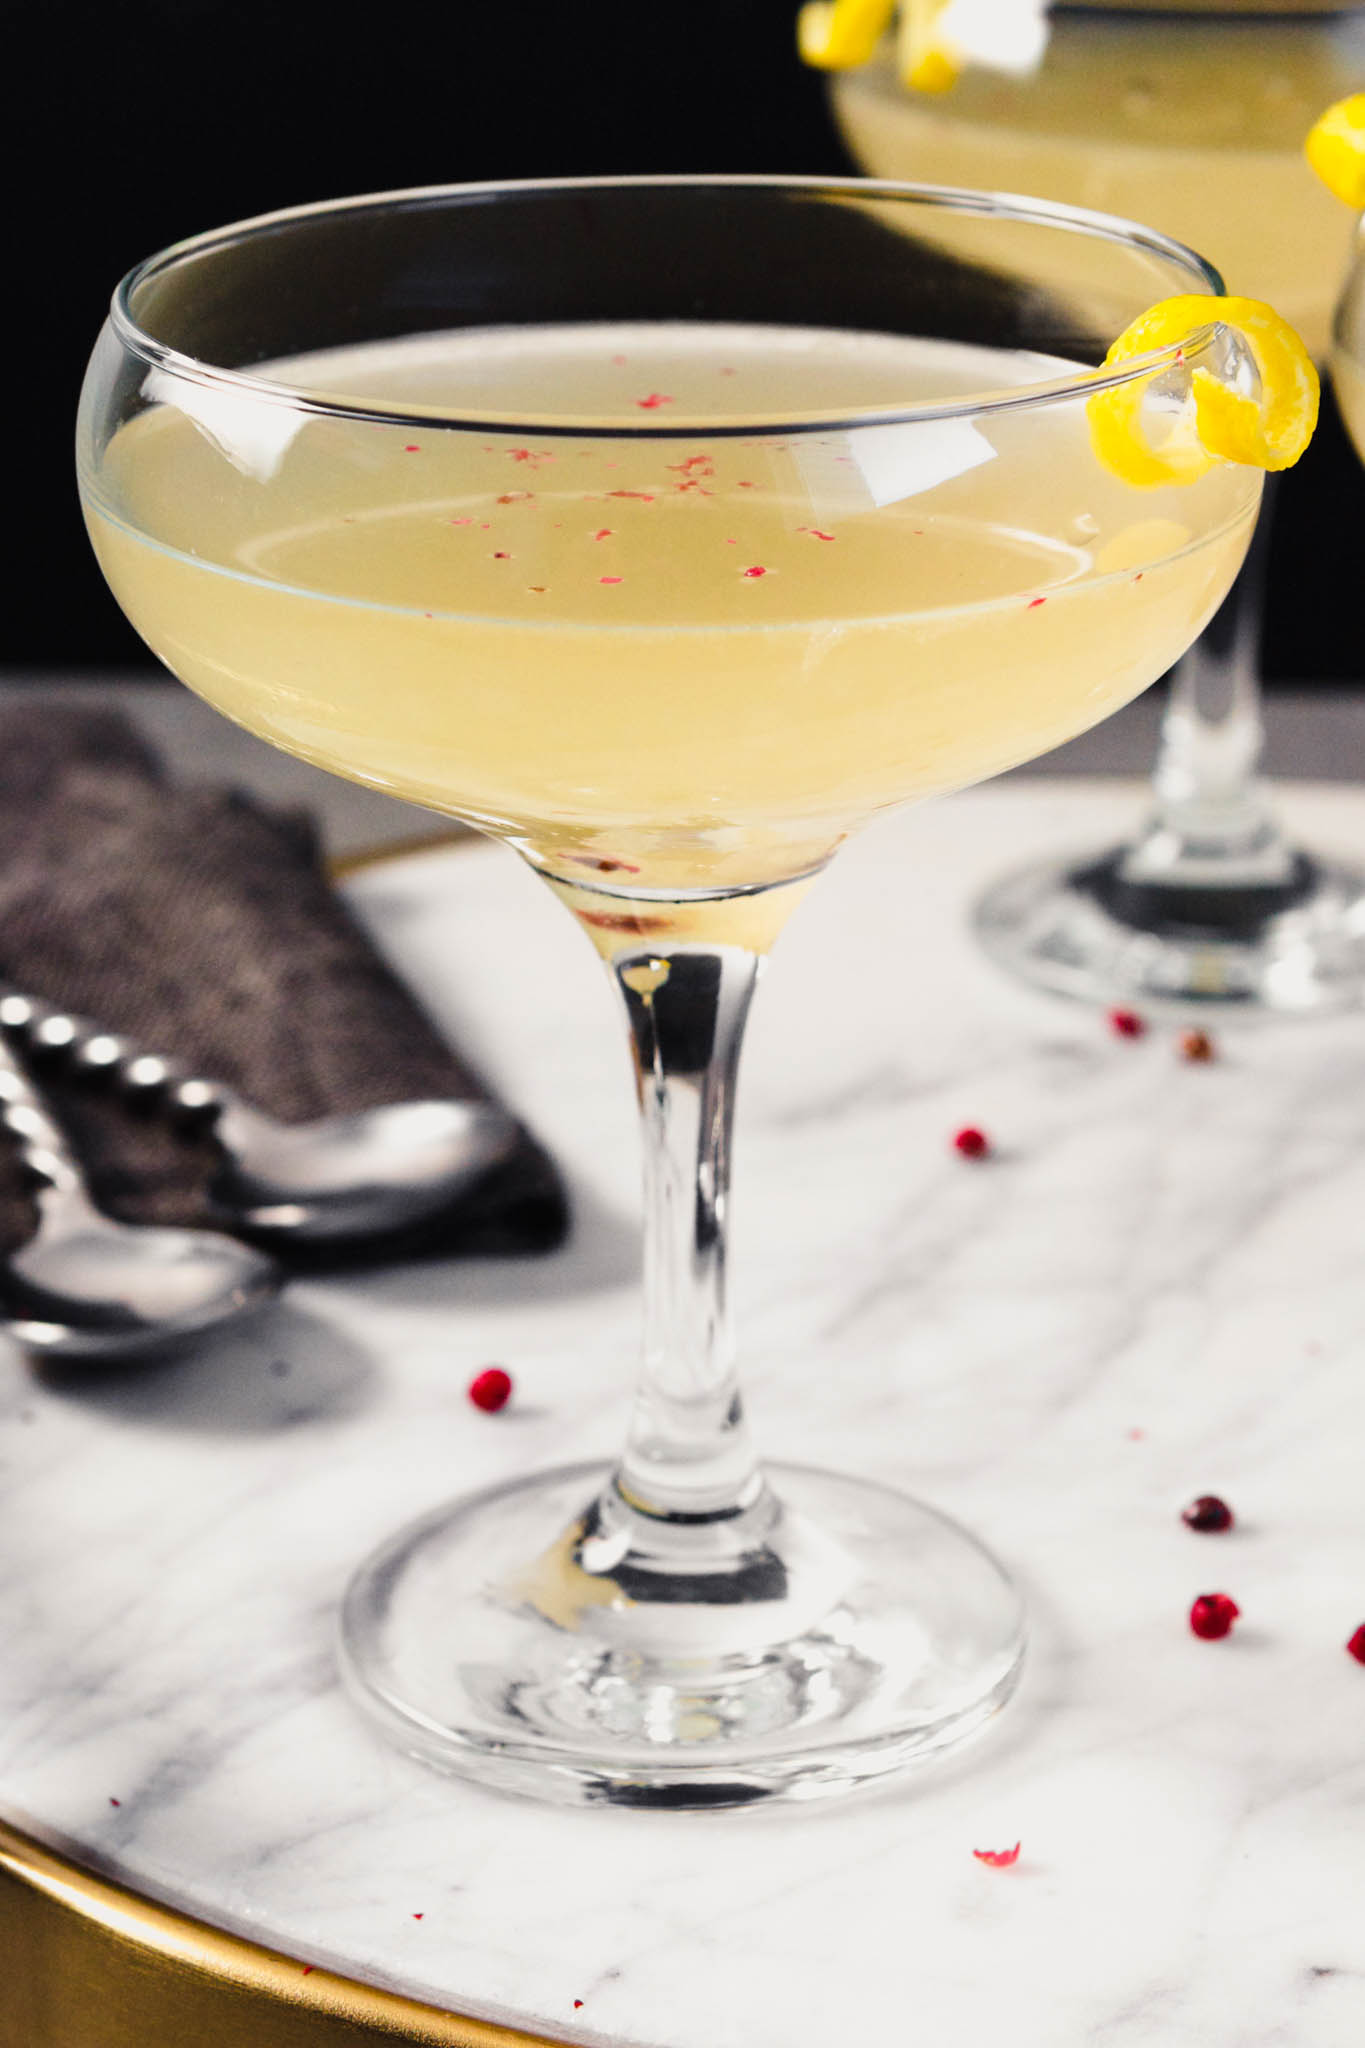 Photograph of a kombucha cocktail in a coupe glass on a marble platter